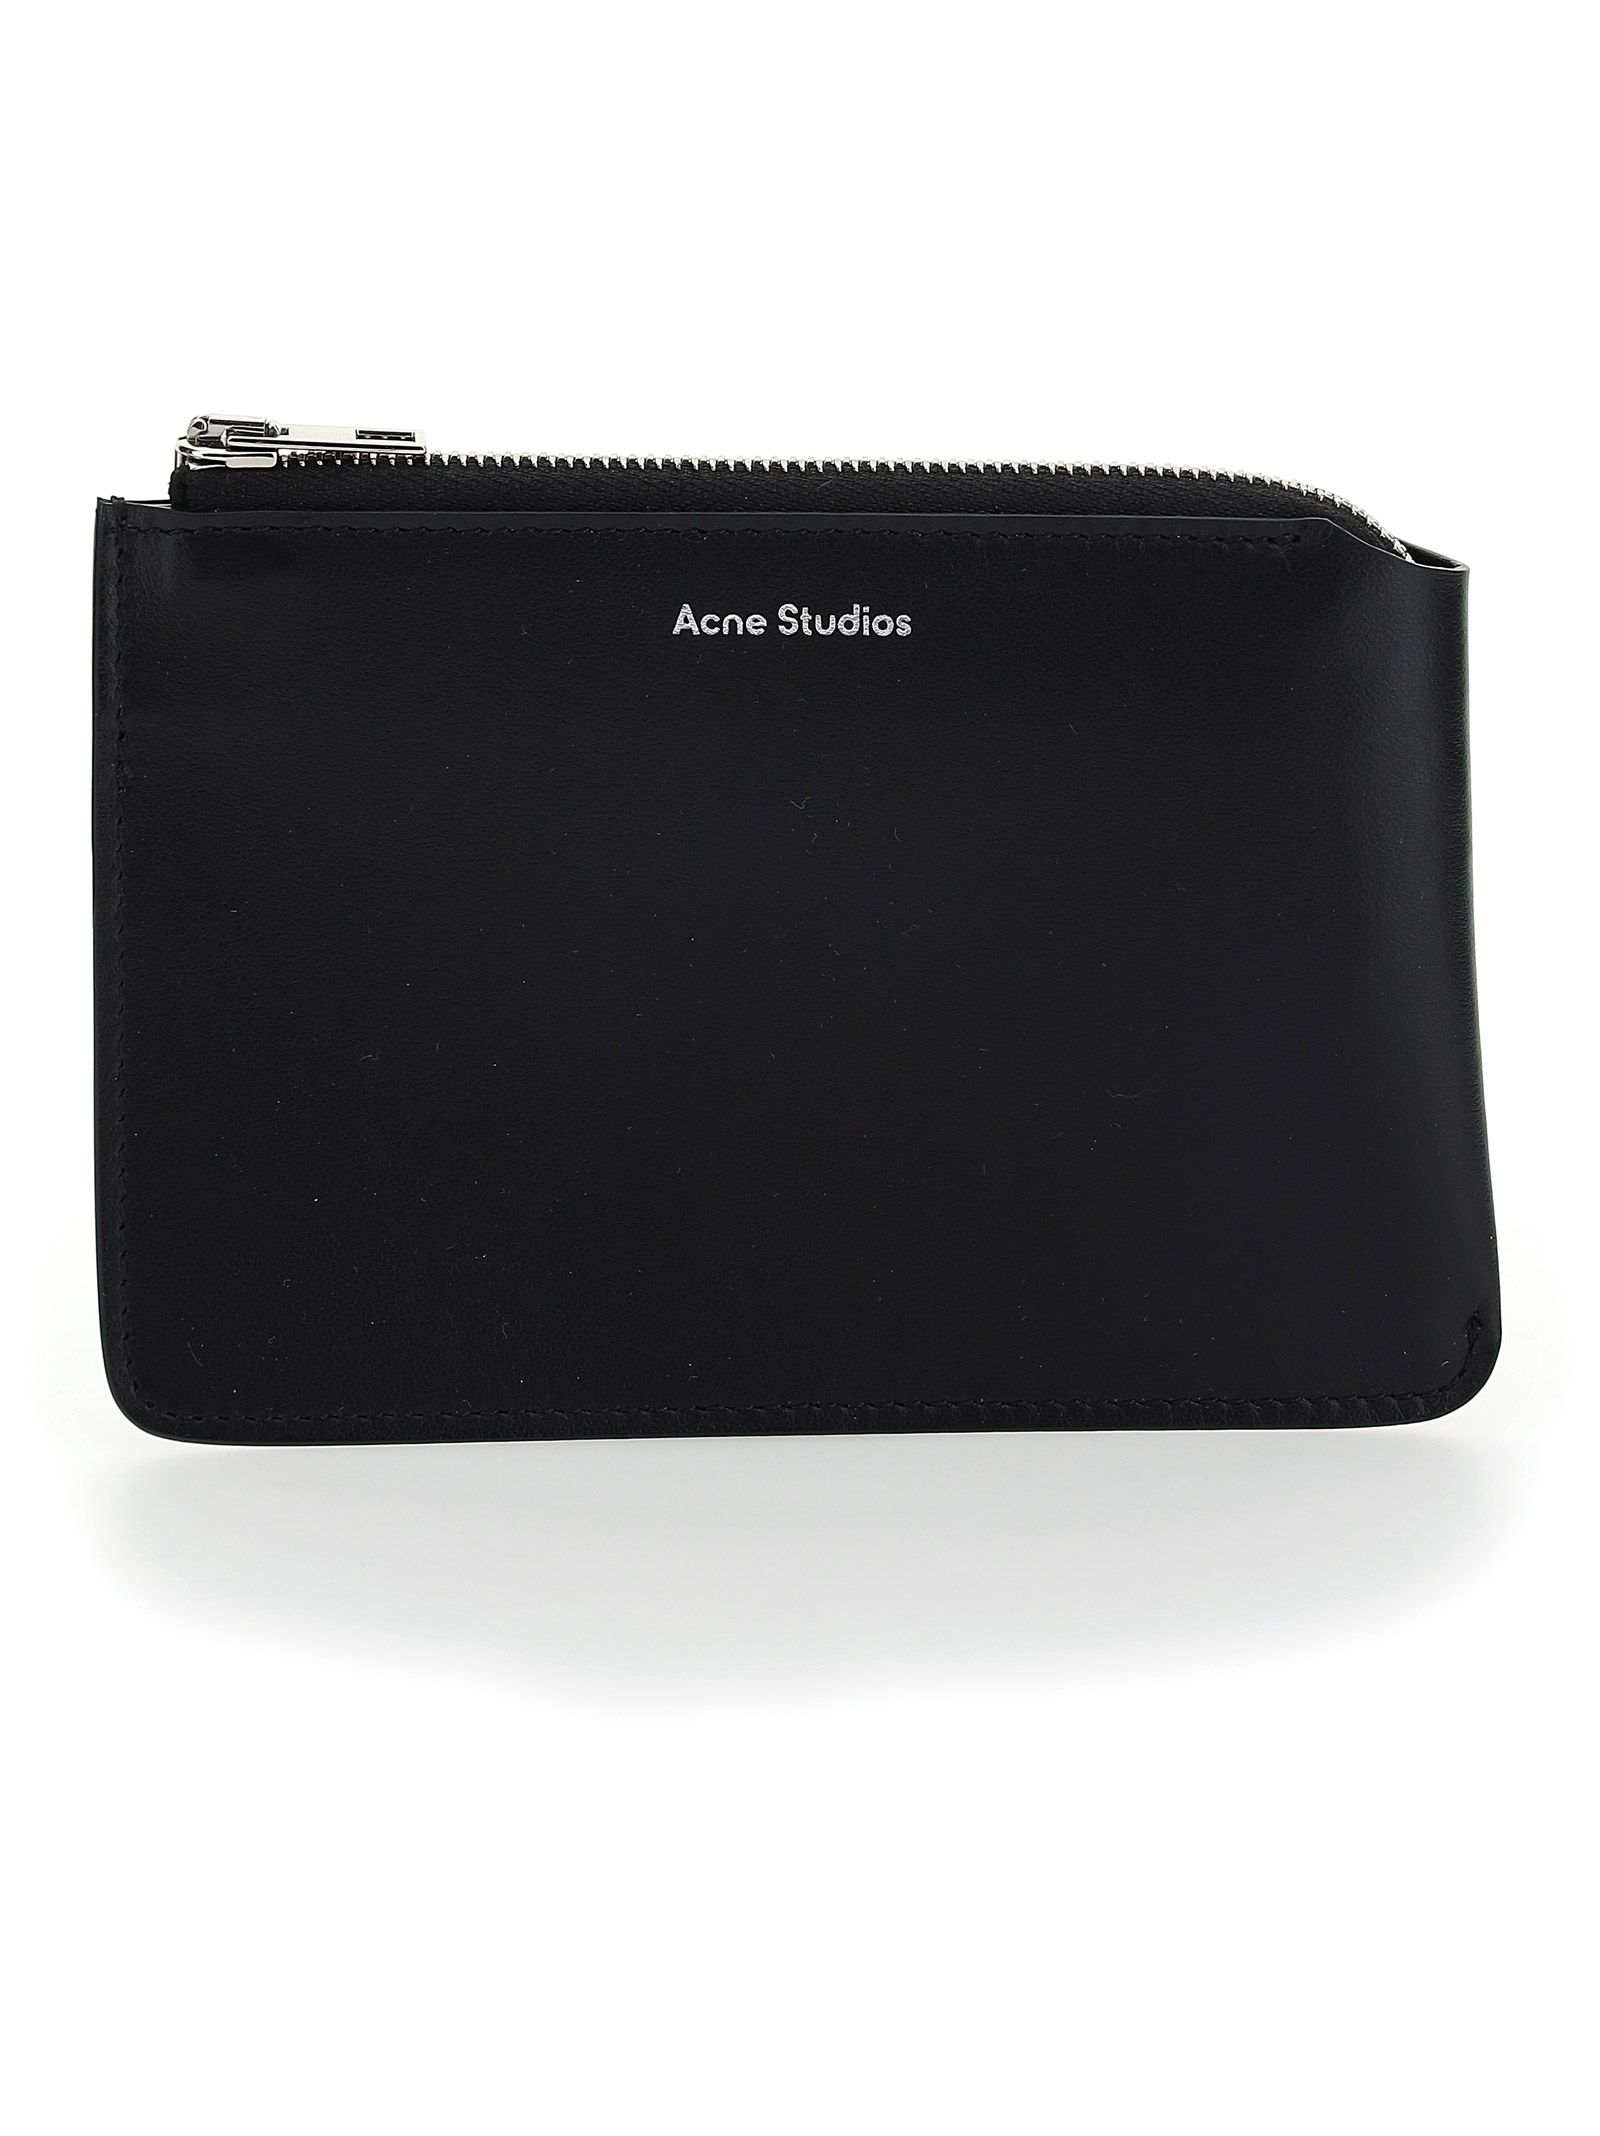 Acne Studios ACNE STUDIOS MEN'S BLACK LEATHER WALLET